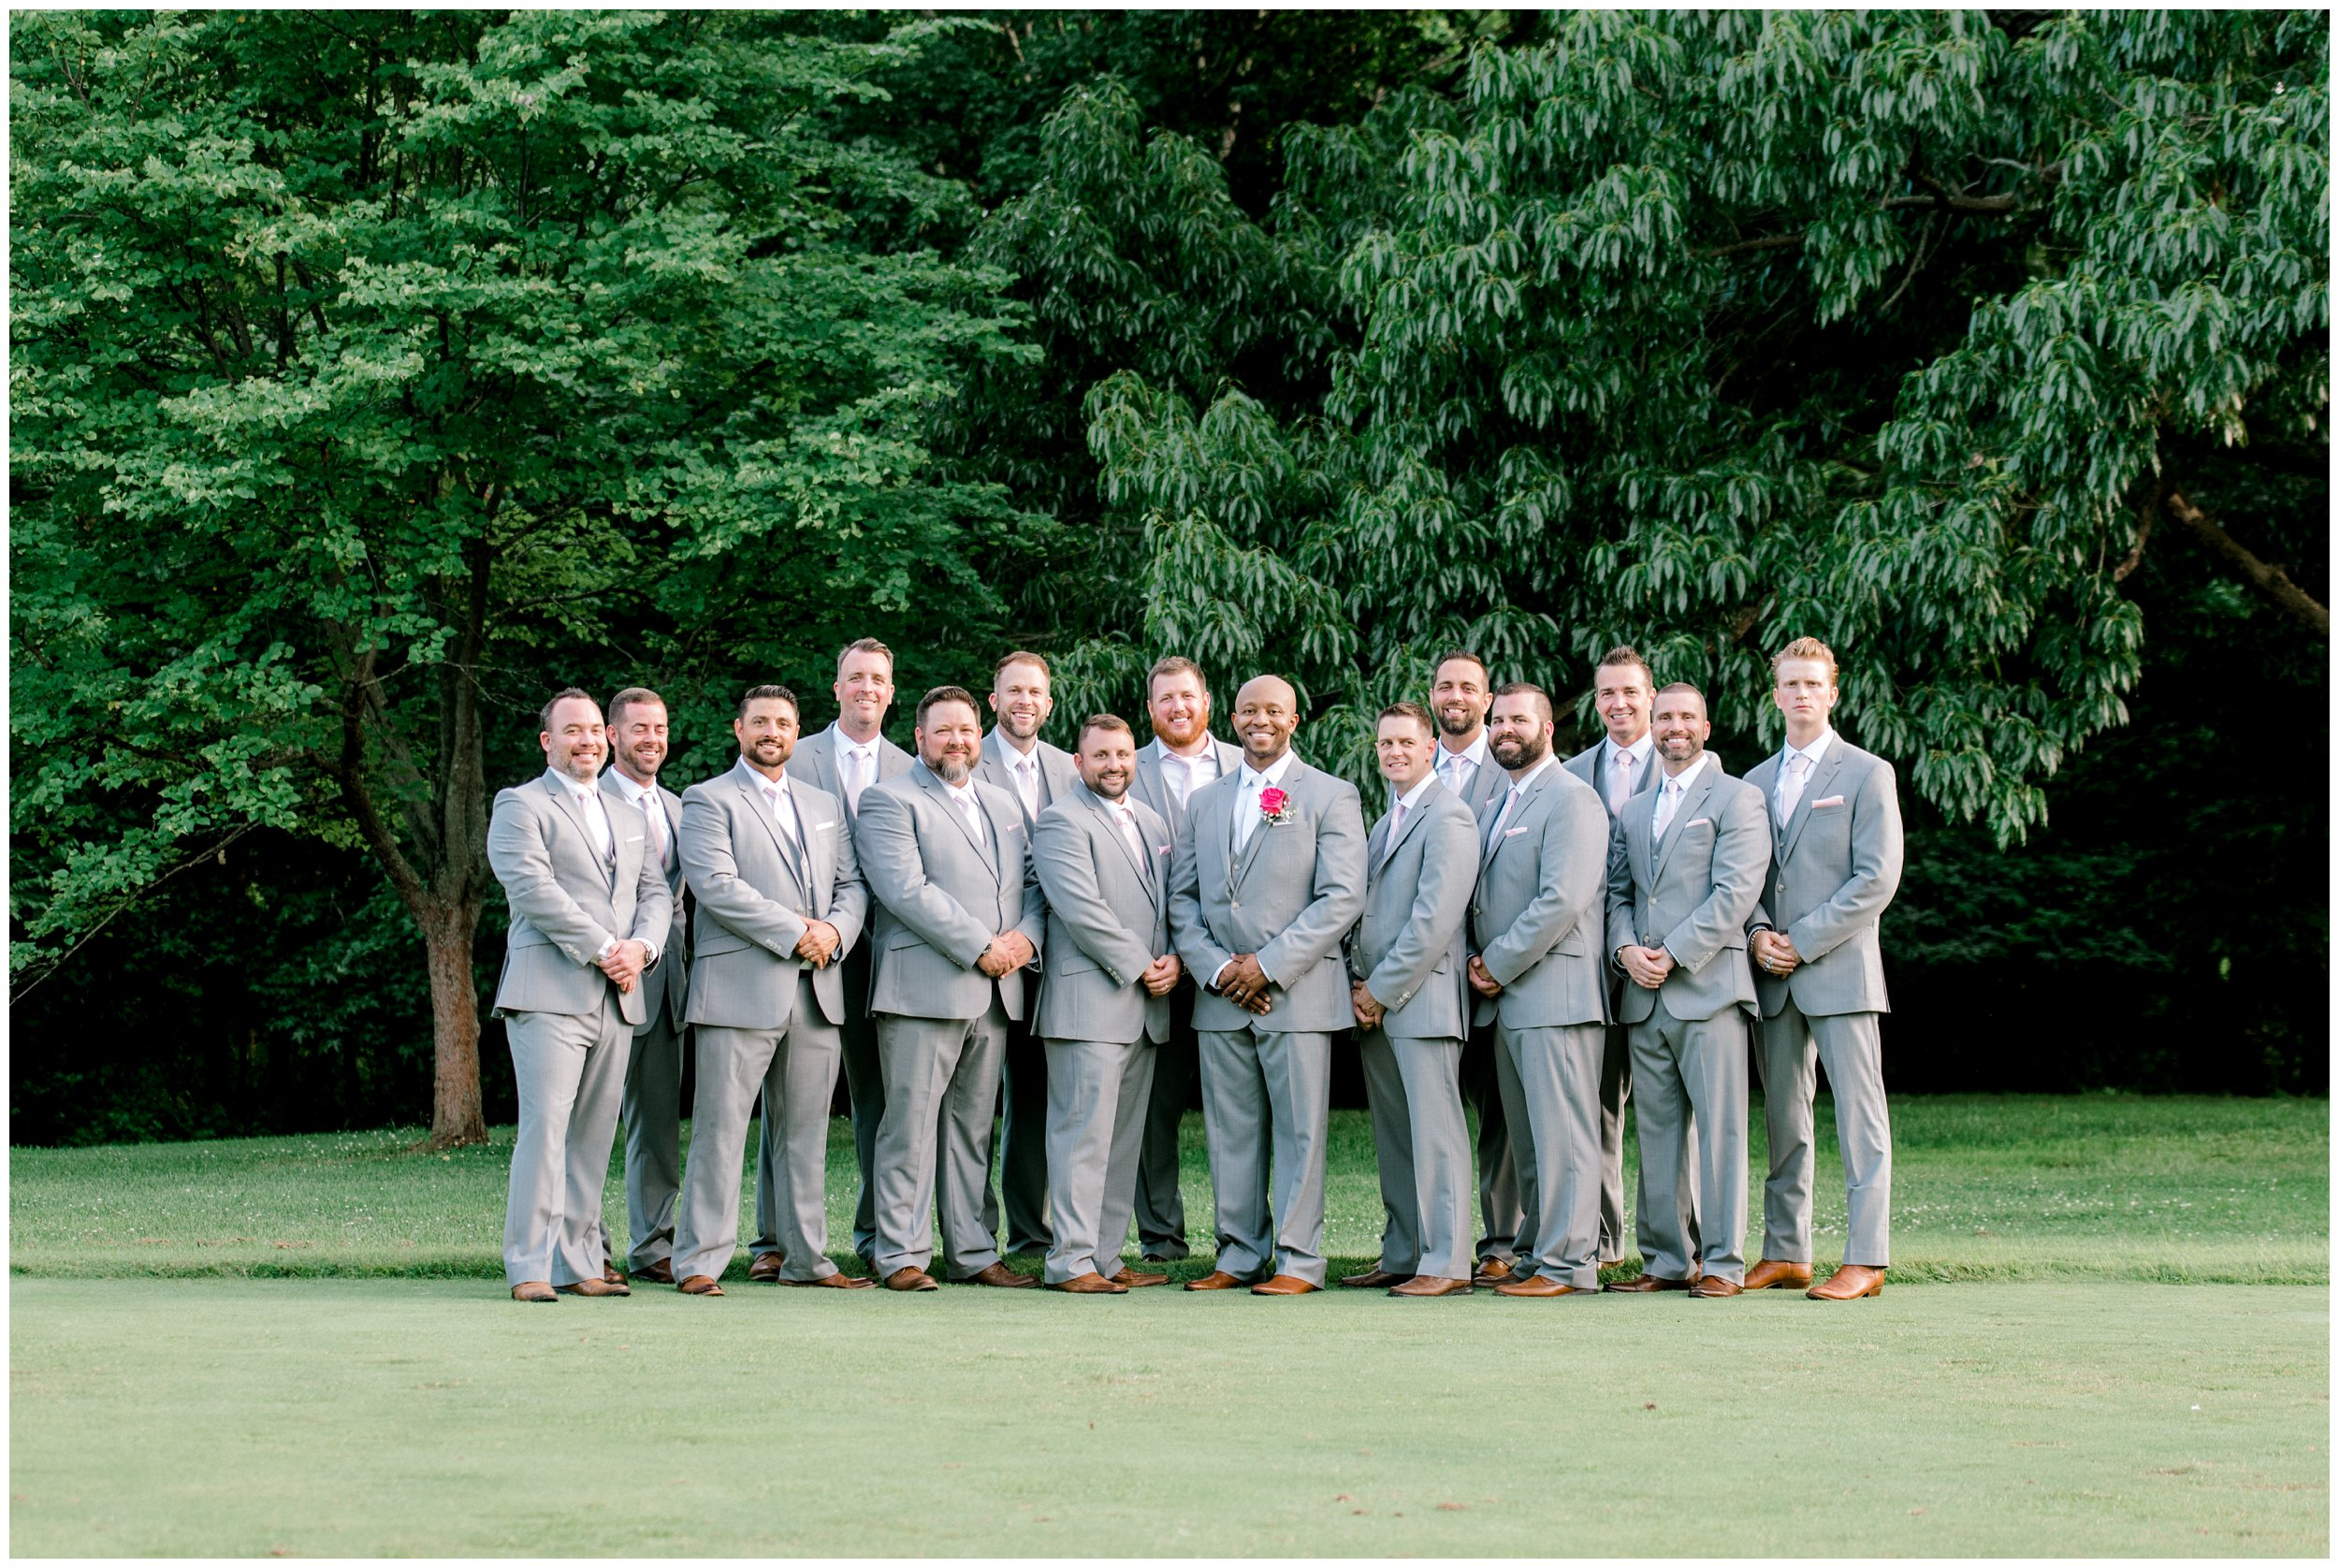 Grooms party at Maryland Wedding